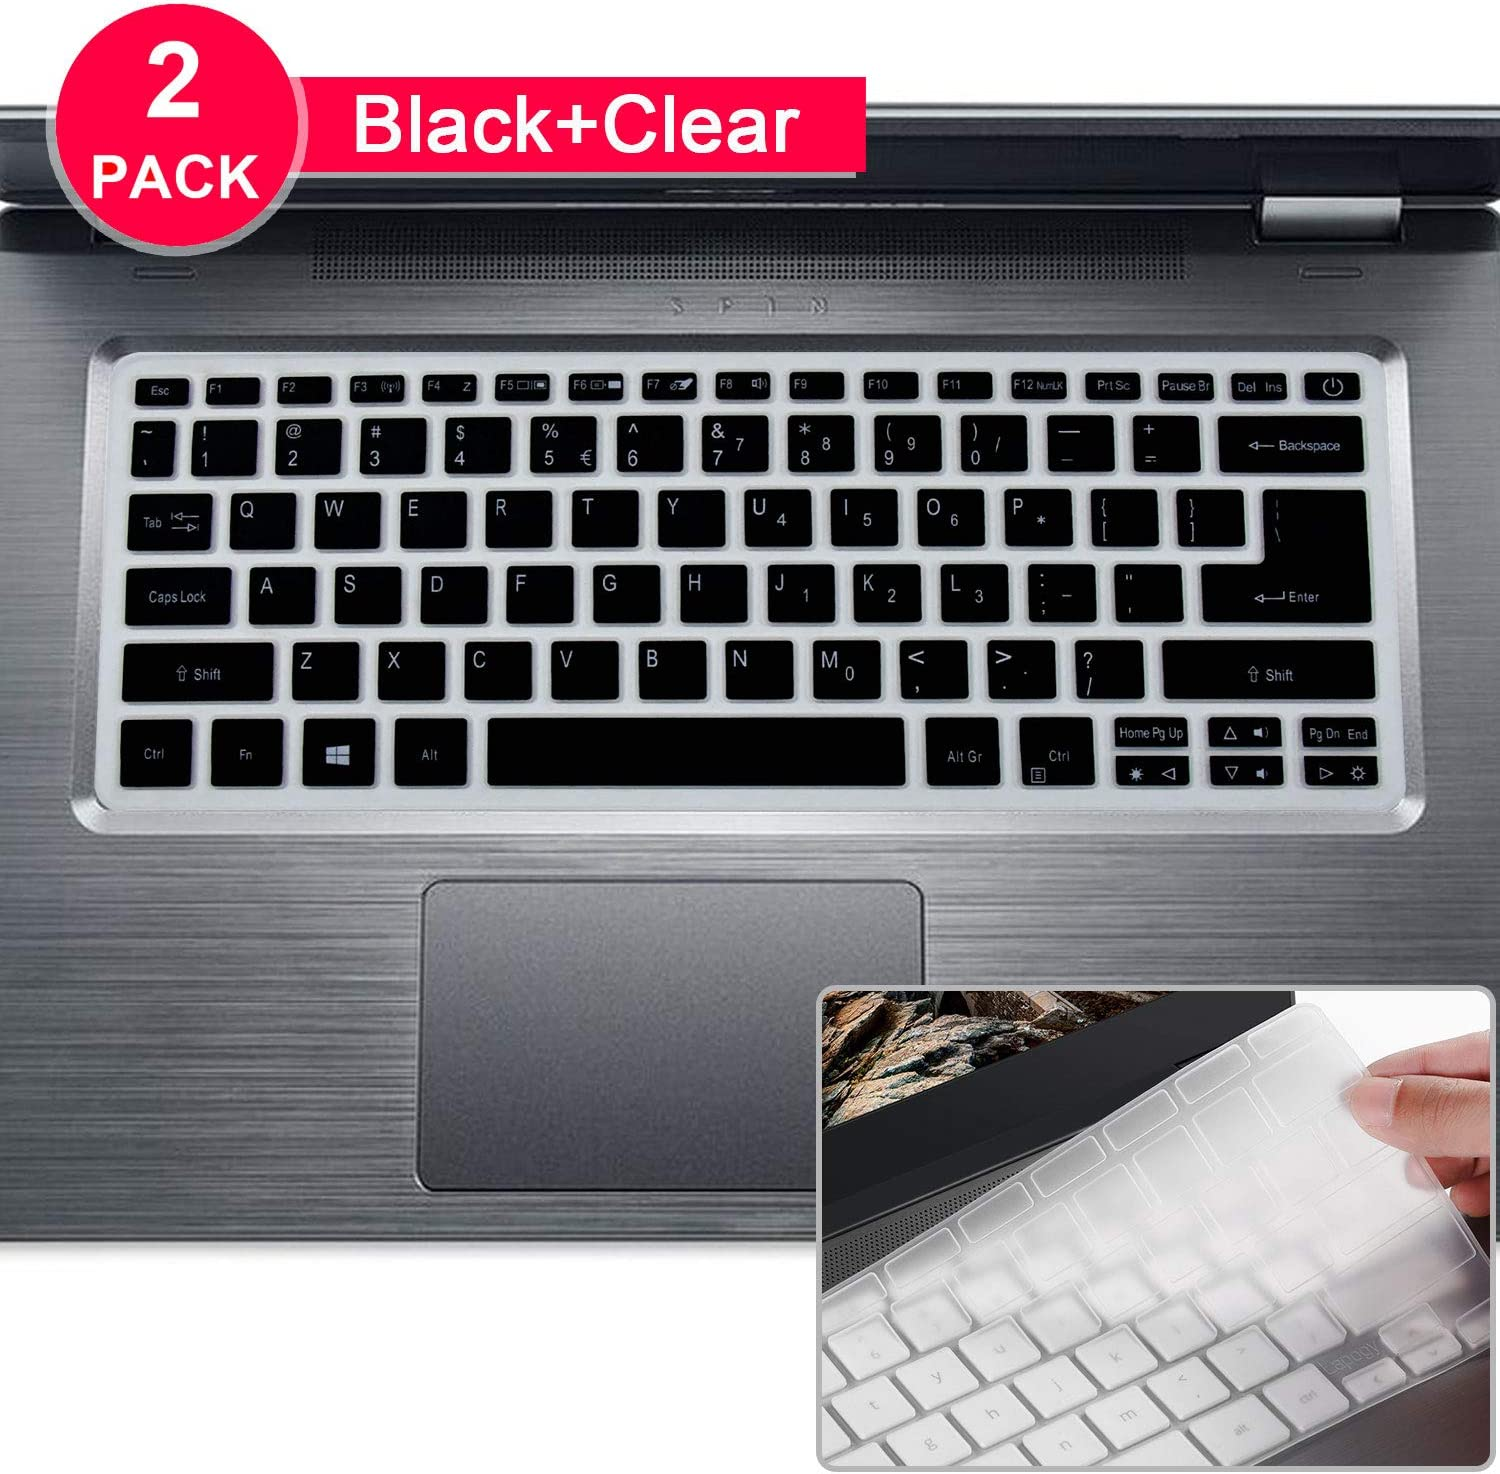 Lapogy[2Pcs]Keyboard Cover for Acer Spin 3 SP314 Series 14 inch&Swift 5 SF514 Series 14/15.6 inch&Swift 3 SF314 Series 14 inch,Ultra Thin Soft Silicone Protective Skin Keyboard Accessories,Black+Clear